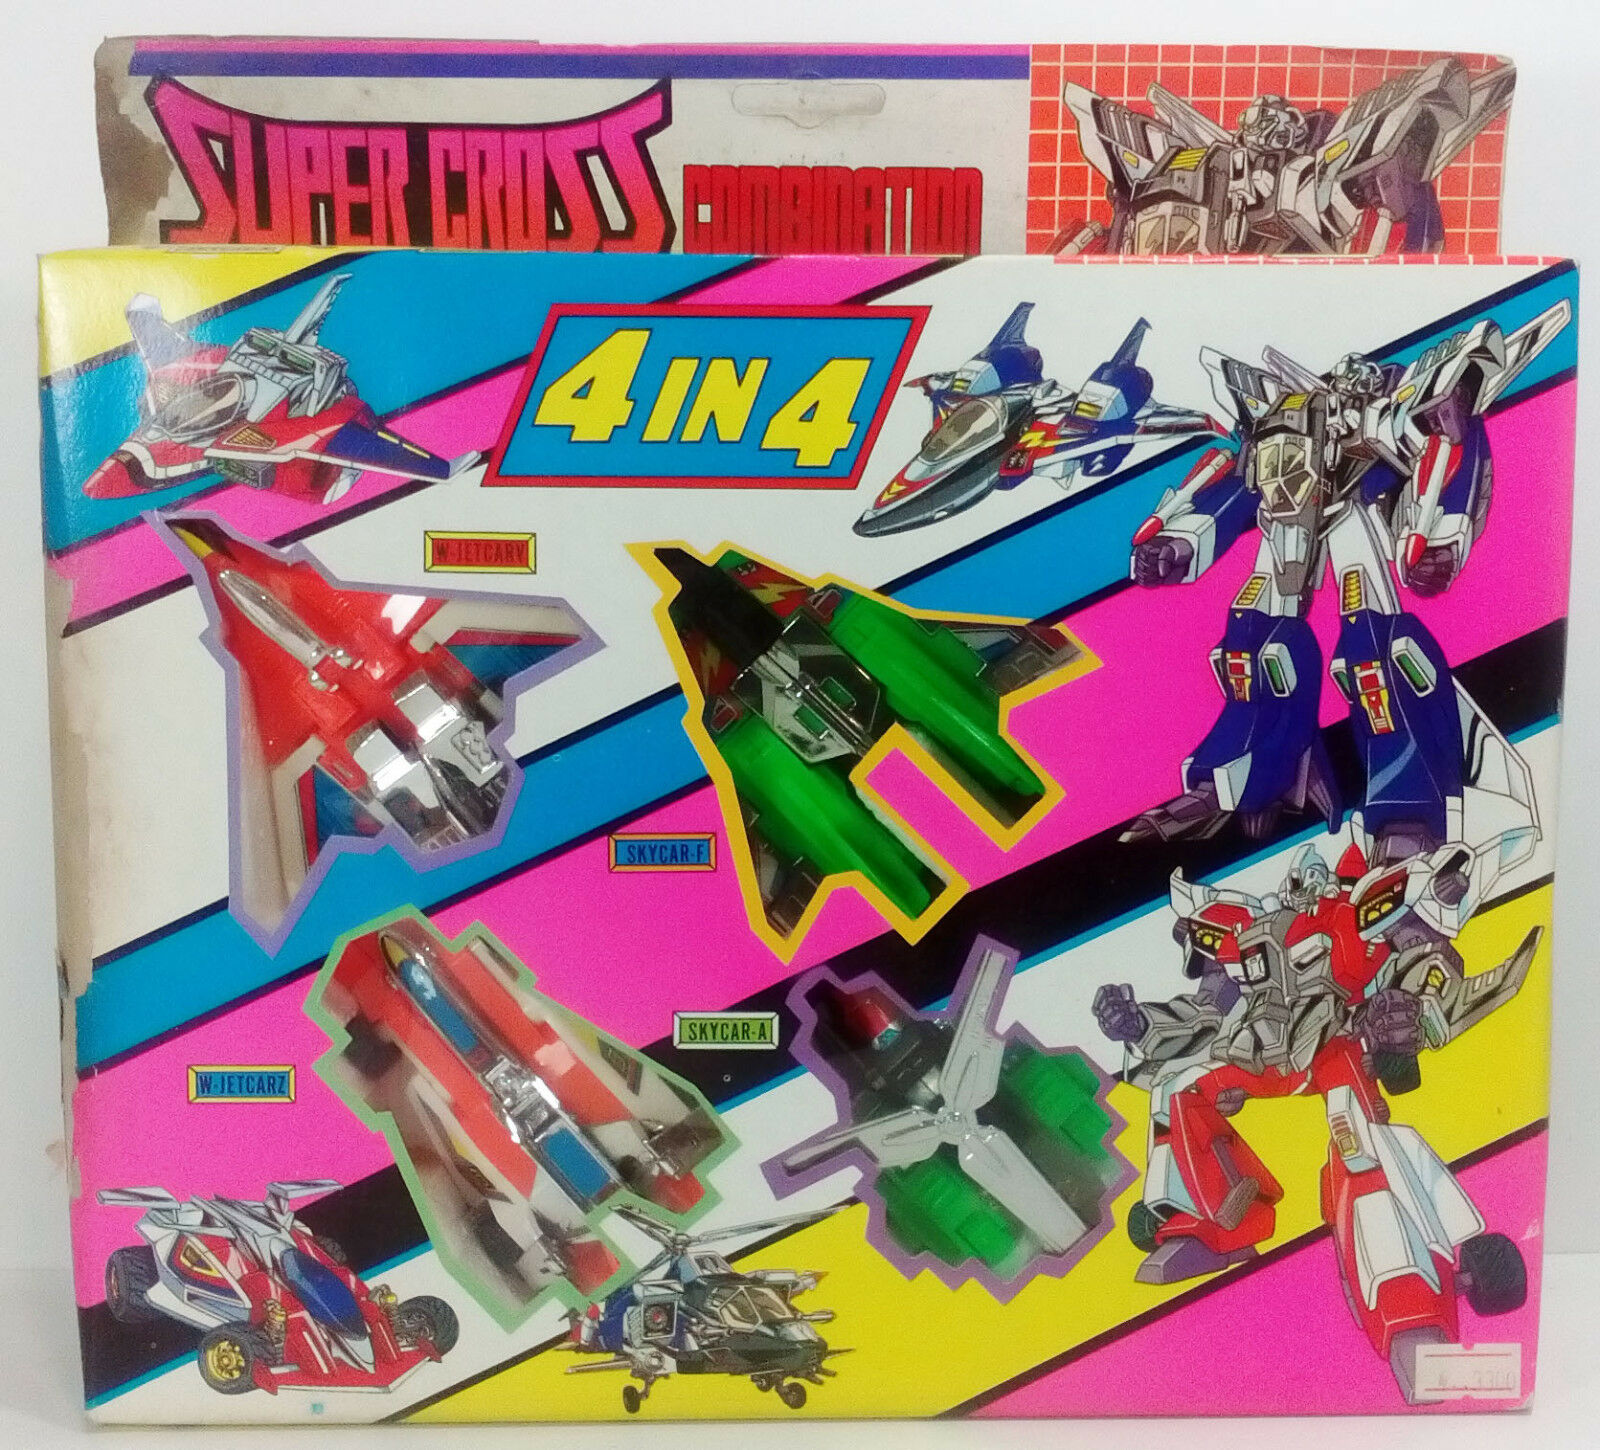 VTG SUPER CROSS COMBINATION 4 IN 4 COMBINERS TRANSFORMERS KO MADE IN TAIWAN